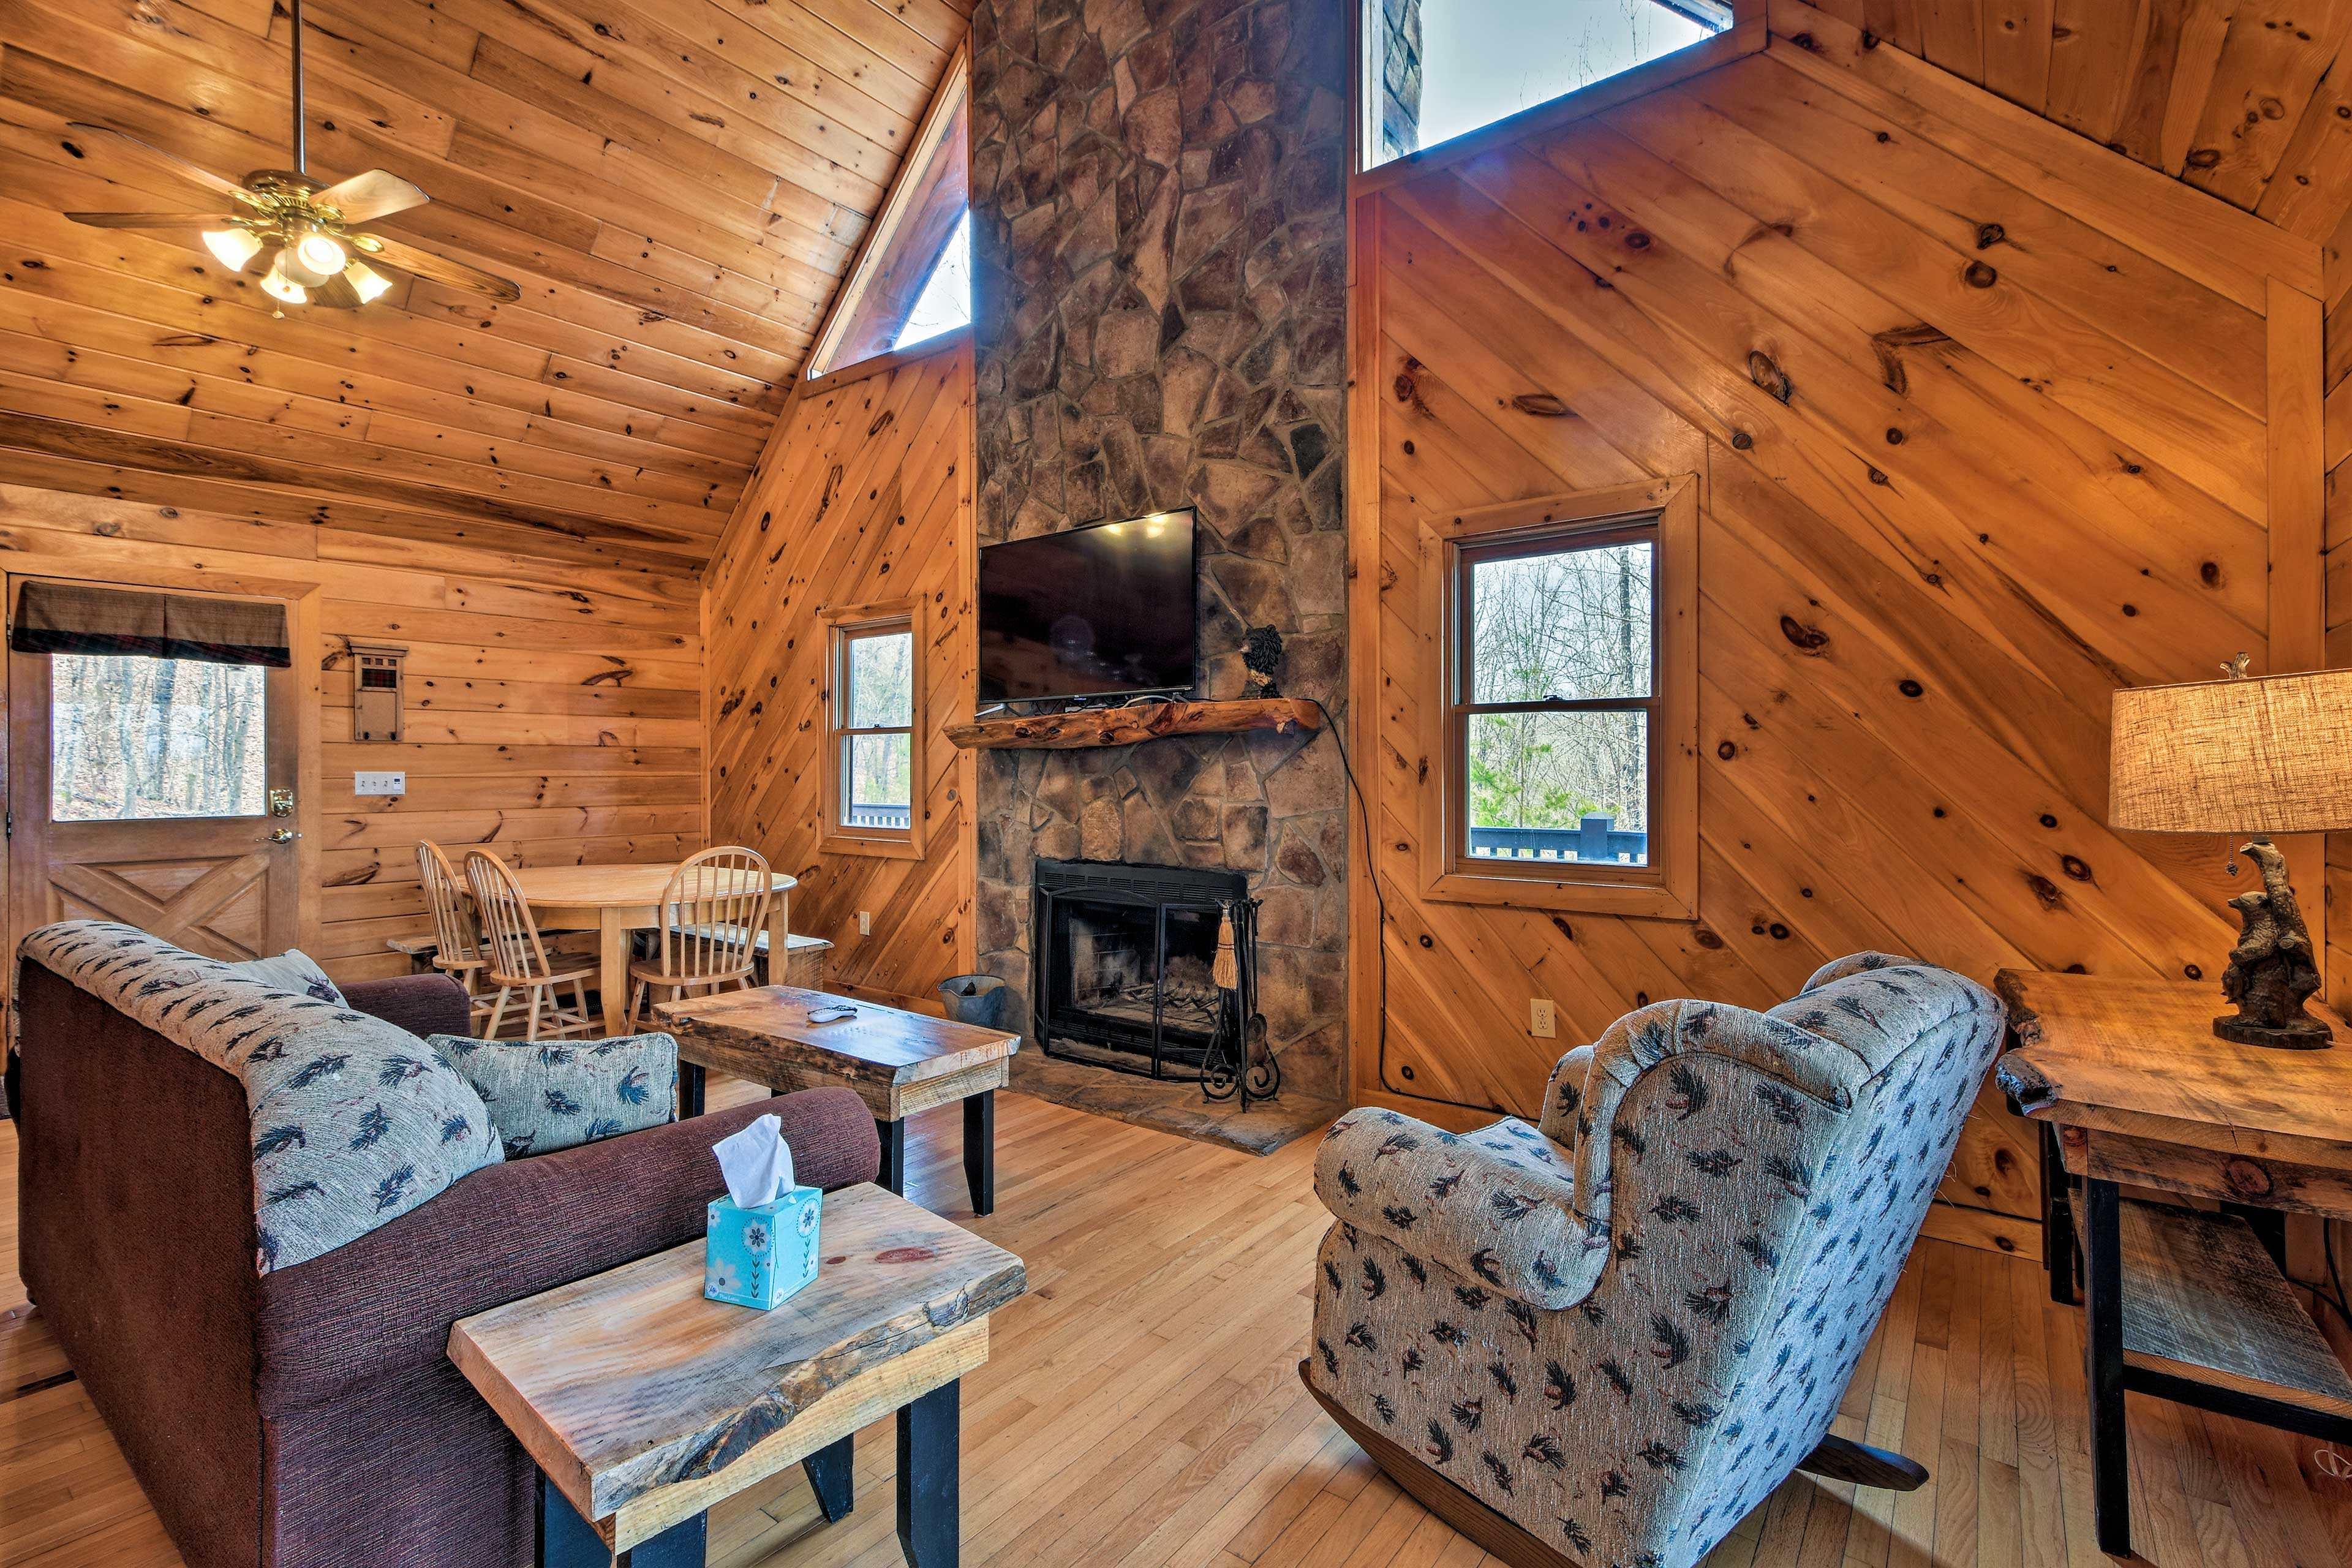 Cozy cabin-style outfits the 3-bedroom+loft, 3-bathroom cabin for 12!